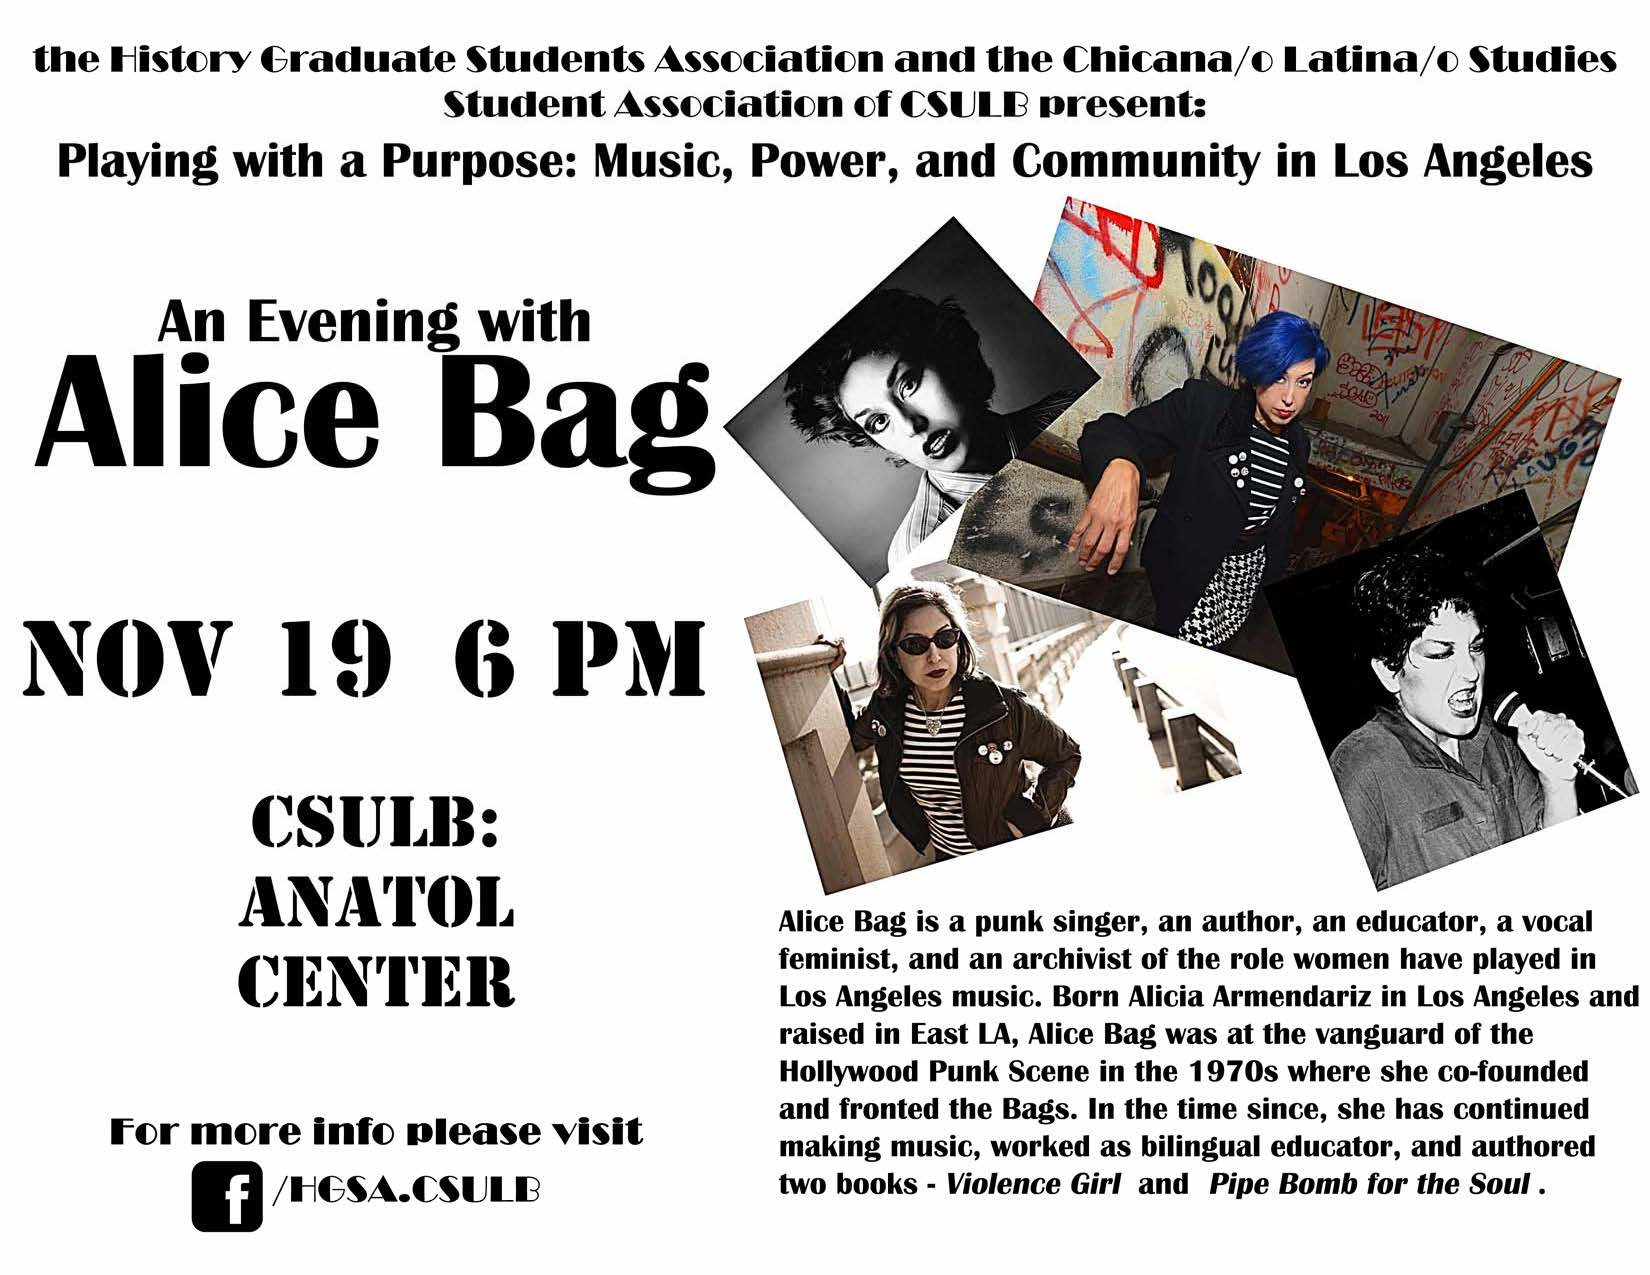 HGSA Presents: An Evening with Alice Bag – History